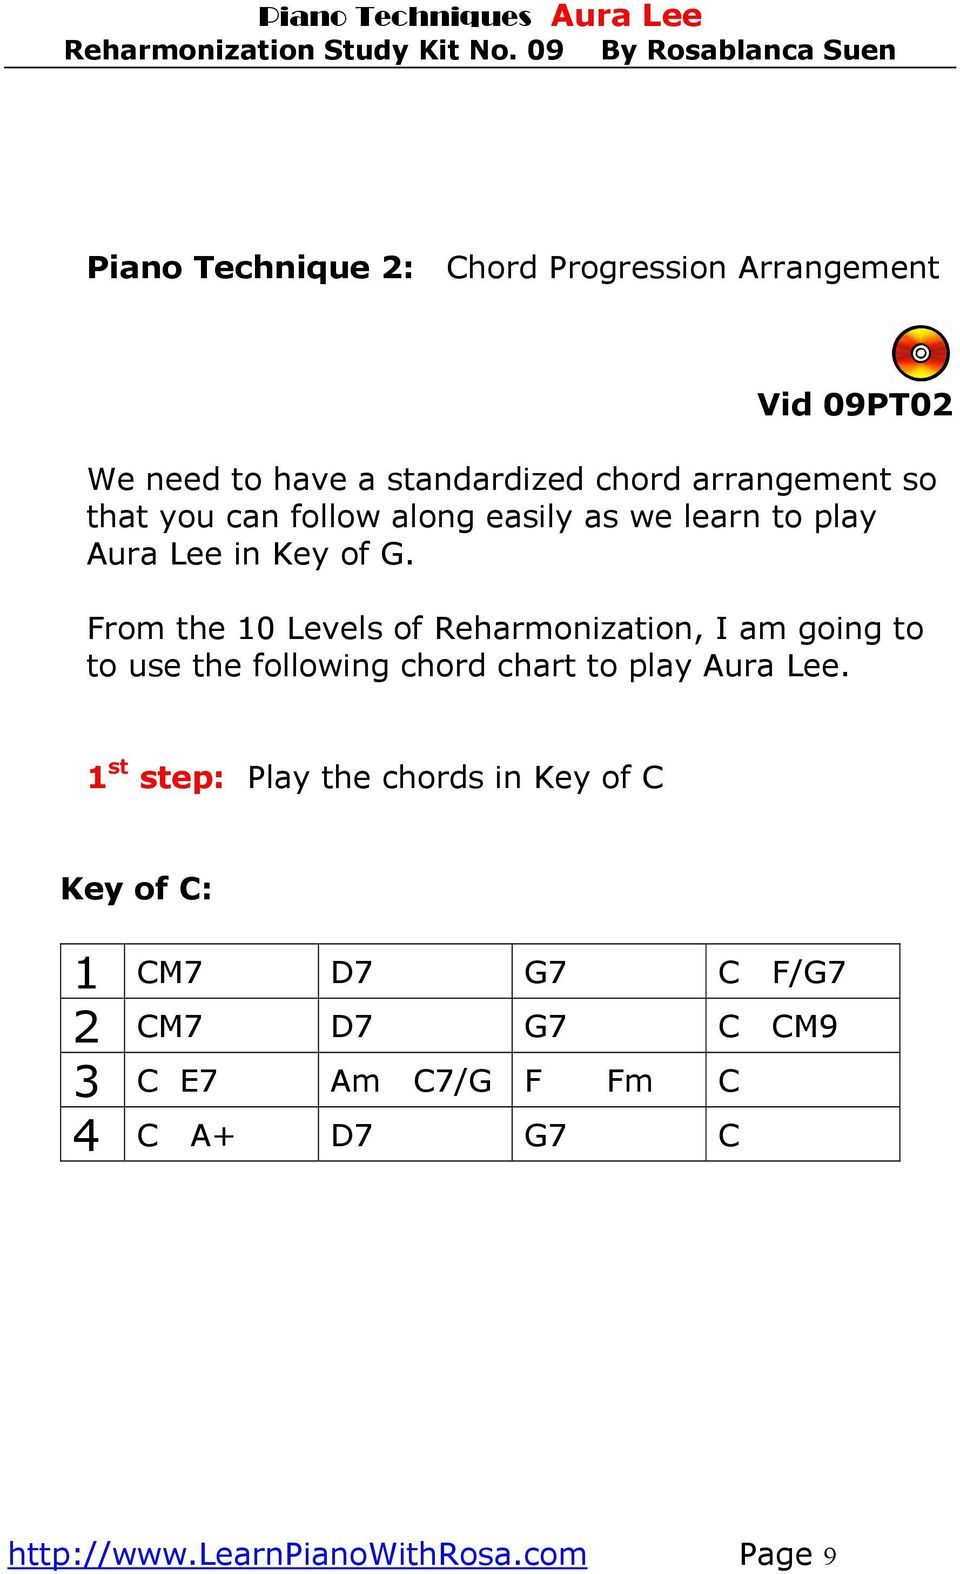 From the 10 Levels of Reharmonization, I am going to to use the following chord chart to play Aura Lee.